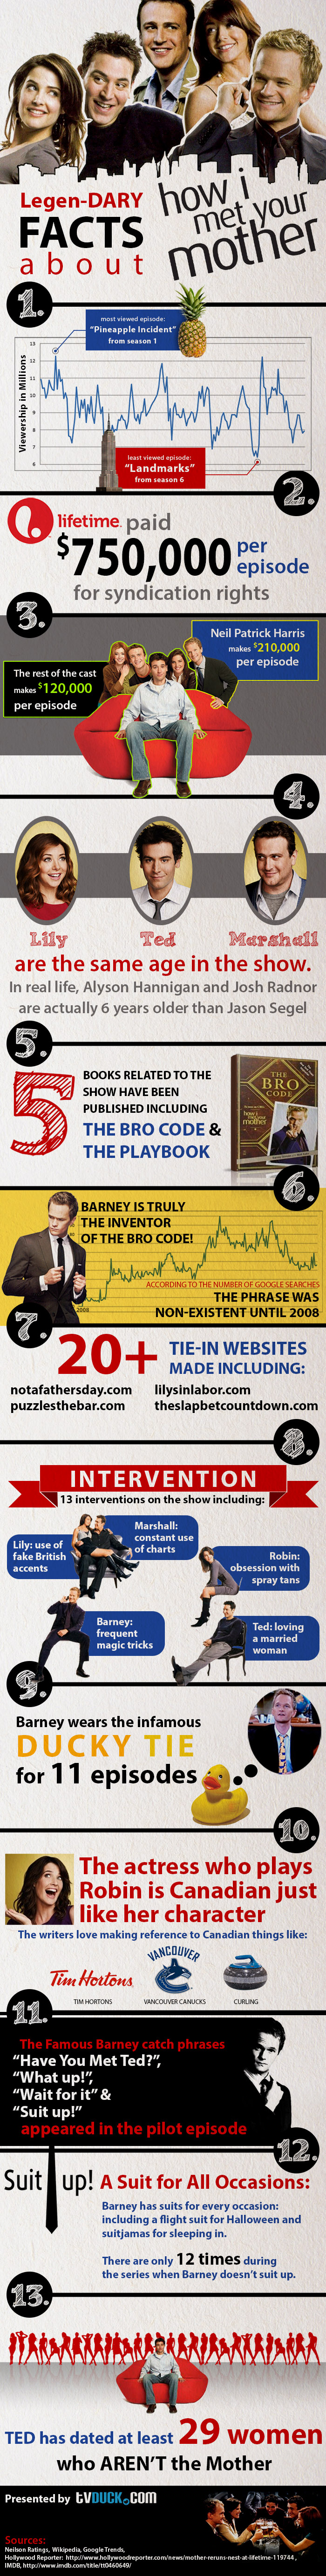 How I Met Your Mother - TV Show Trivia